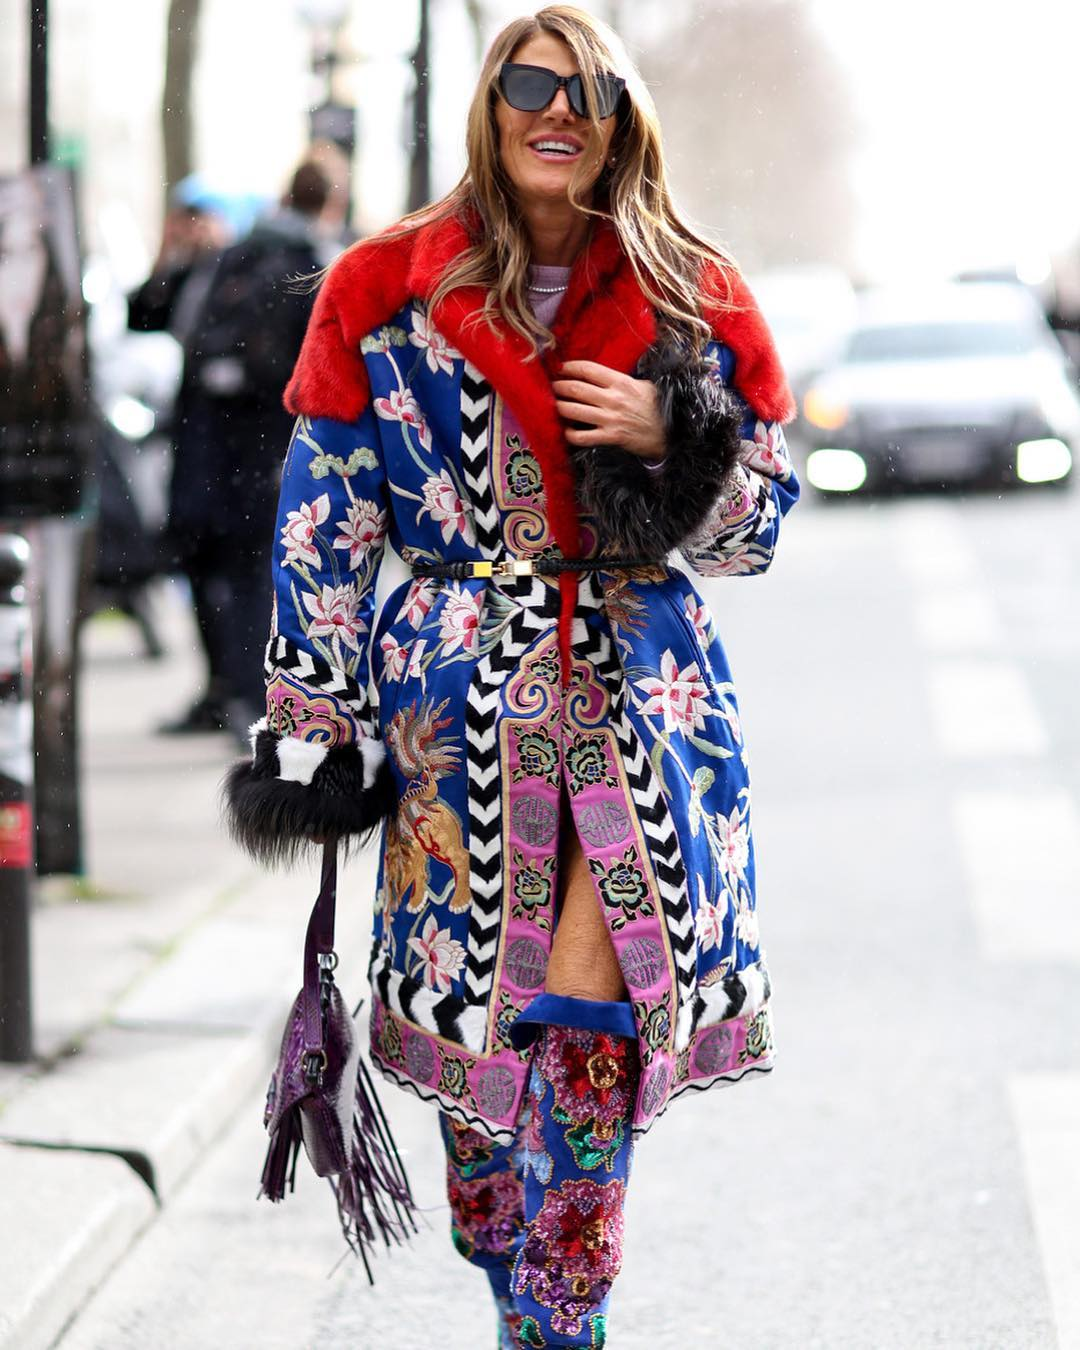 What to expect from the Anna Dello Russo documentary